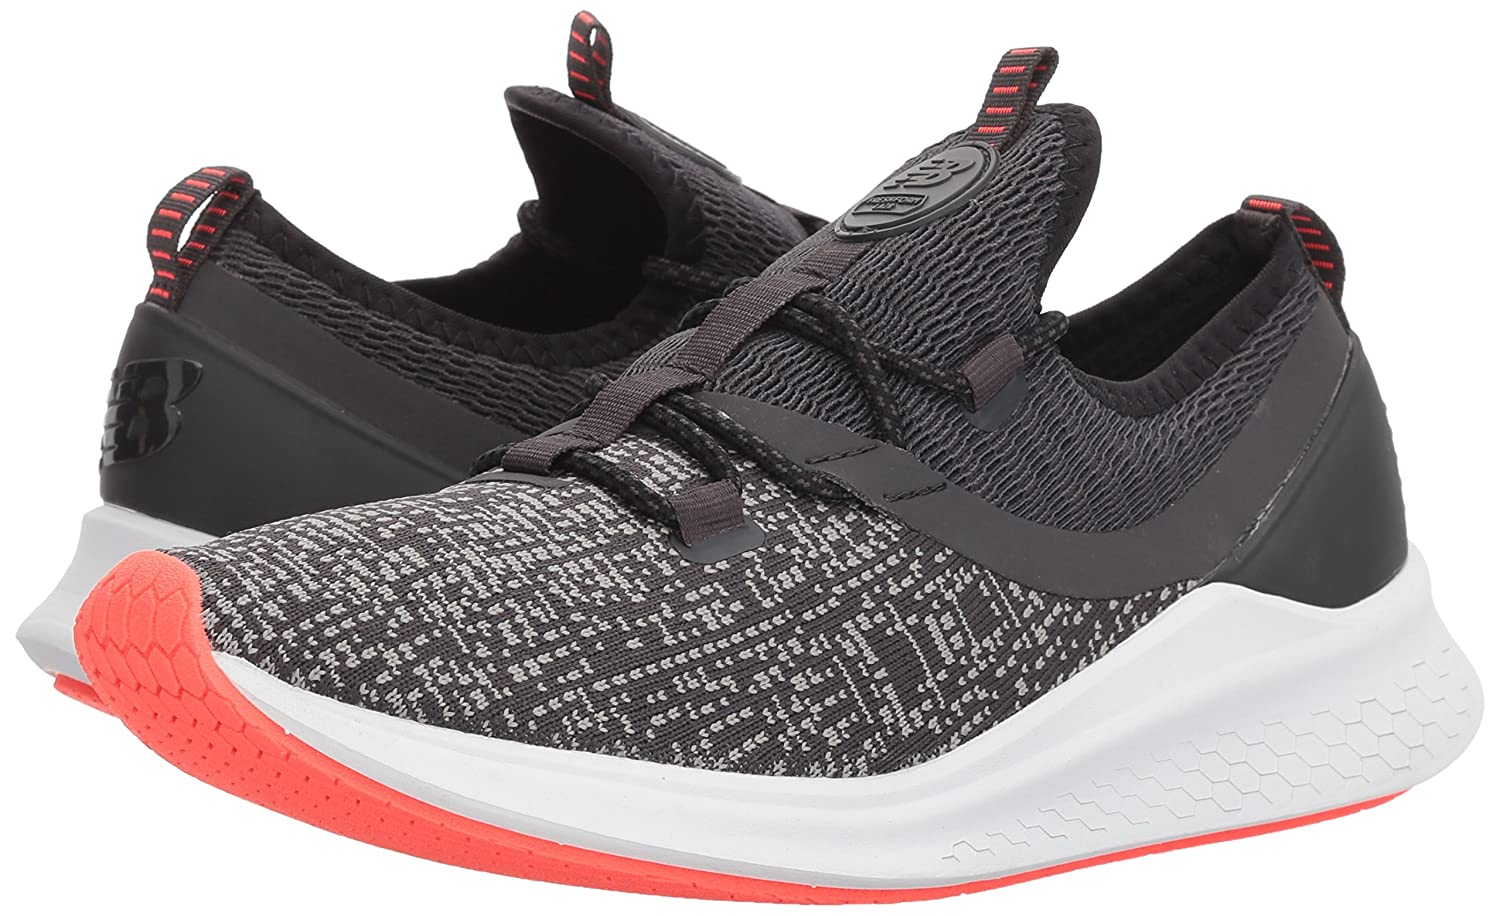 New Balance Women's Fresh Foam Lazr V1 Sport Running US|Team Shoe B06XSCBWZF 5 B(M) US|Team Running Away Grey/Phantom/White Munsell 8f64da